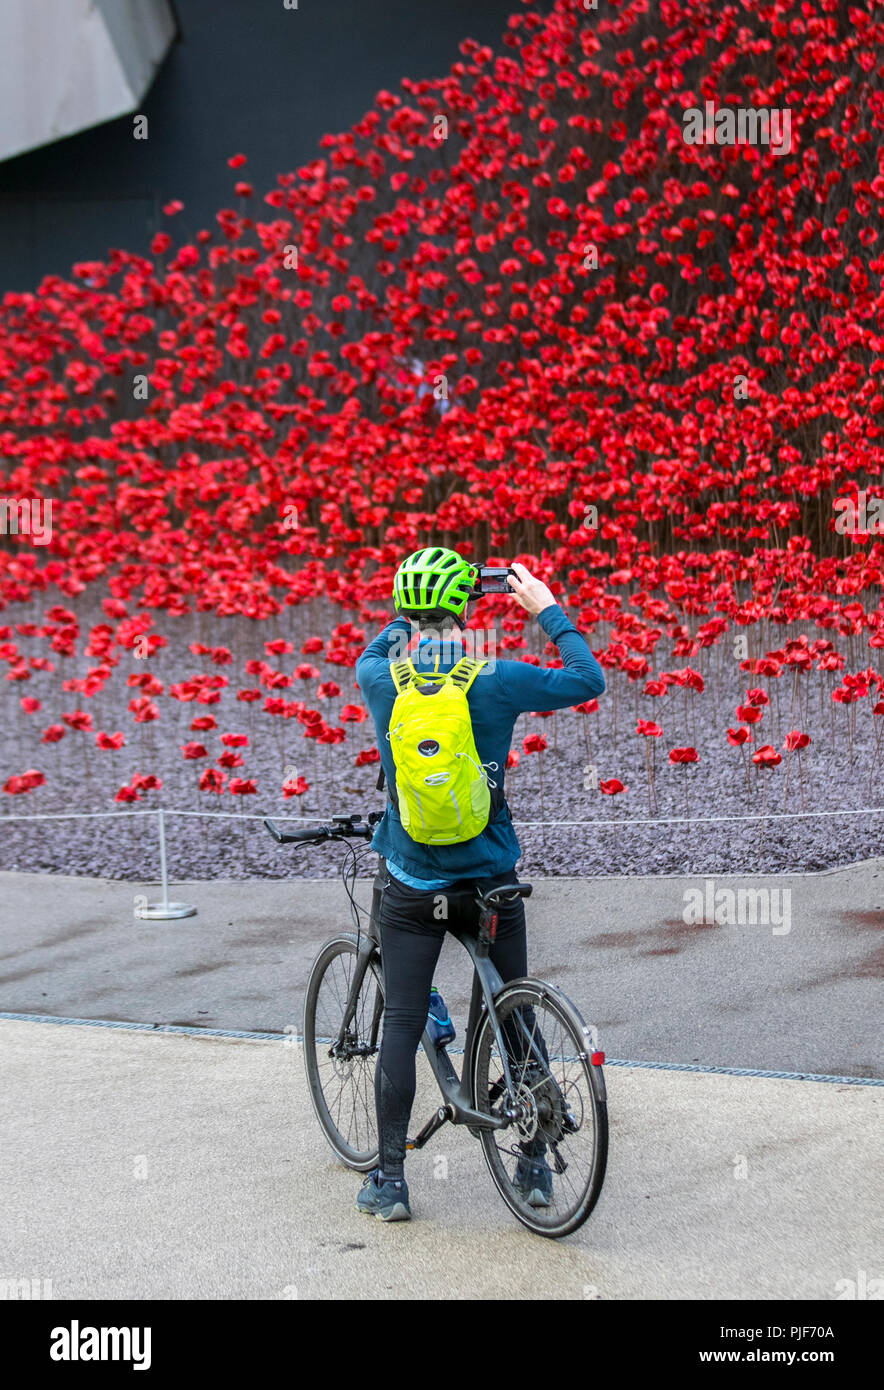 Manchester, UK.7th Sept 2018. The iconic poppy sculpture Wave by artist Paul Cummins and designer Tom Piper at IWM North. This is the final presentation of Wave as part of 14-18 commemoration. It is the first time that Manchester has hosted one of these artworks. The installation 'Blood Swept Lands and Seas of Red' poppies an original concept by artist Paul Cummins and installation designed by Tom Piper. The installation was originally at HM Tower of London where 888,246 poppies were displayed. Credit: MediaWorldImages/Alamy Live News Stock Photo